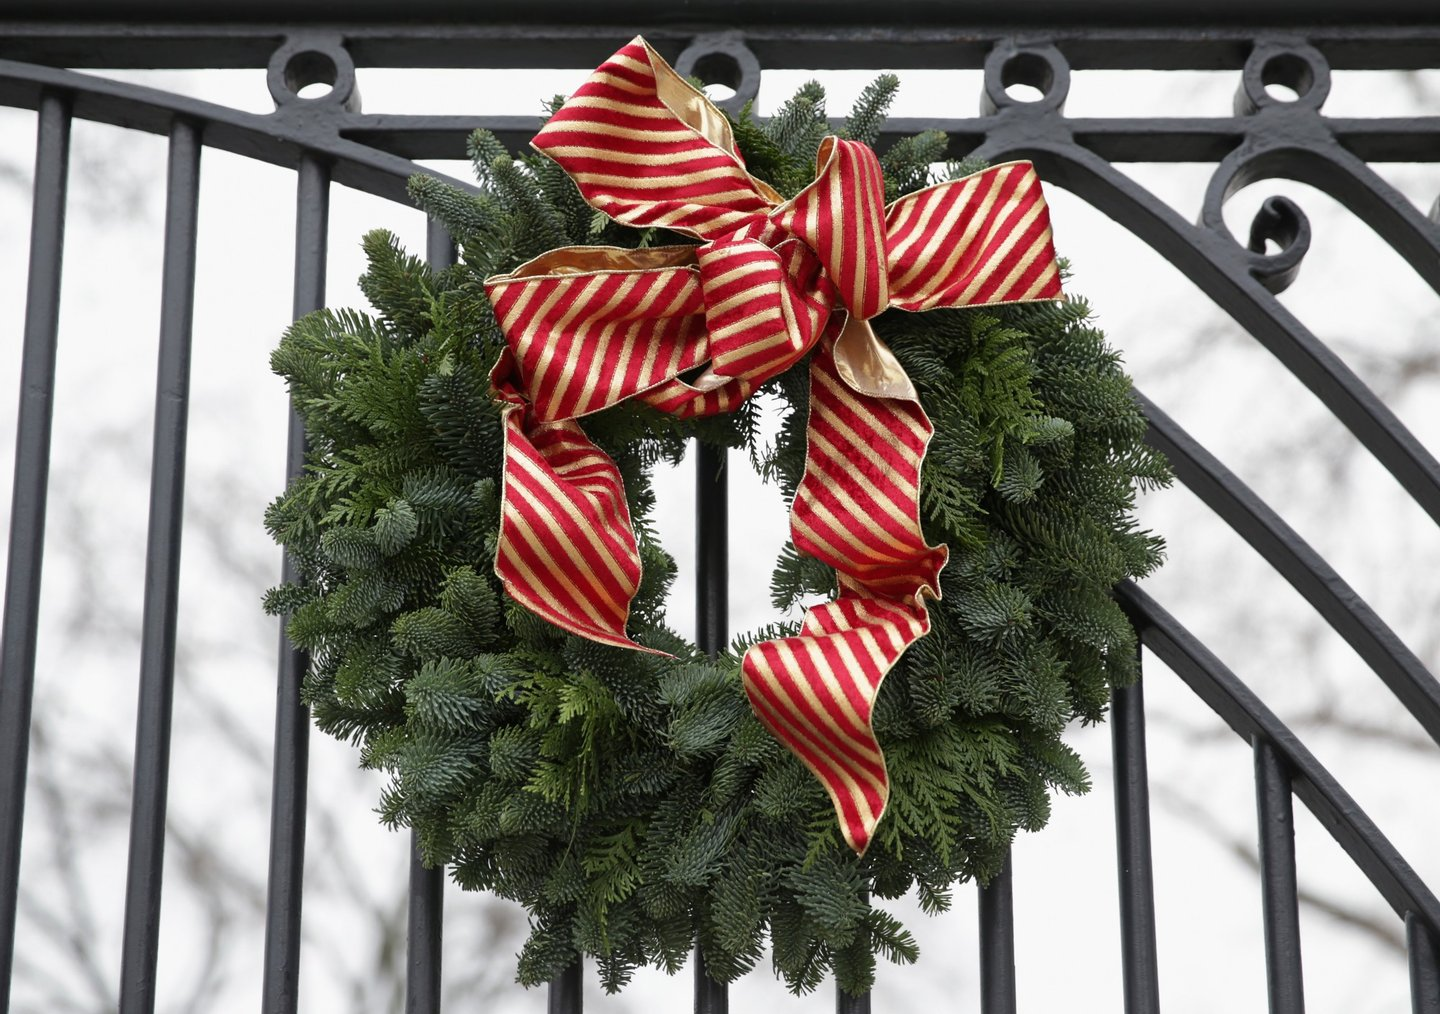 WASHINGTON, DC - DECEMBER 04: A Christmas wreath is hung on a gate of the White House December 4, 2013 in Washington, DC. U.S. first lady Michelle Obama will host today military families for the first viewing of the 2013 holiday decorations and demonstrating holiday crafts and treats to military children. (Photo by Alex Wong/Getty Images)